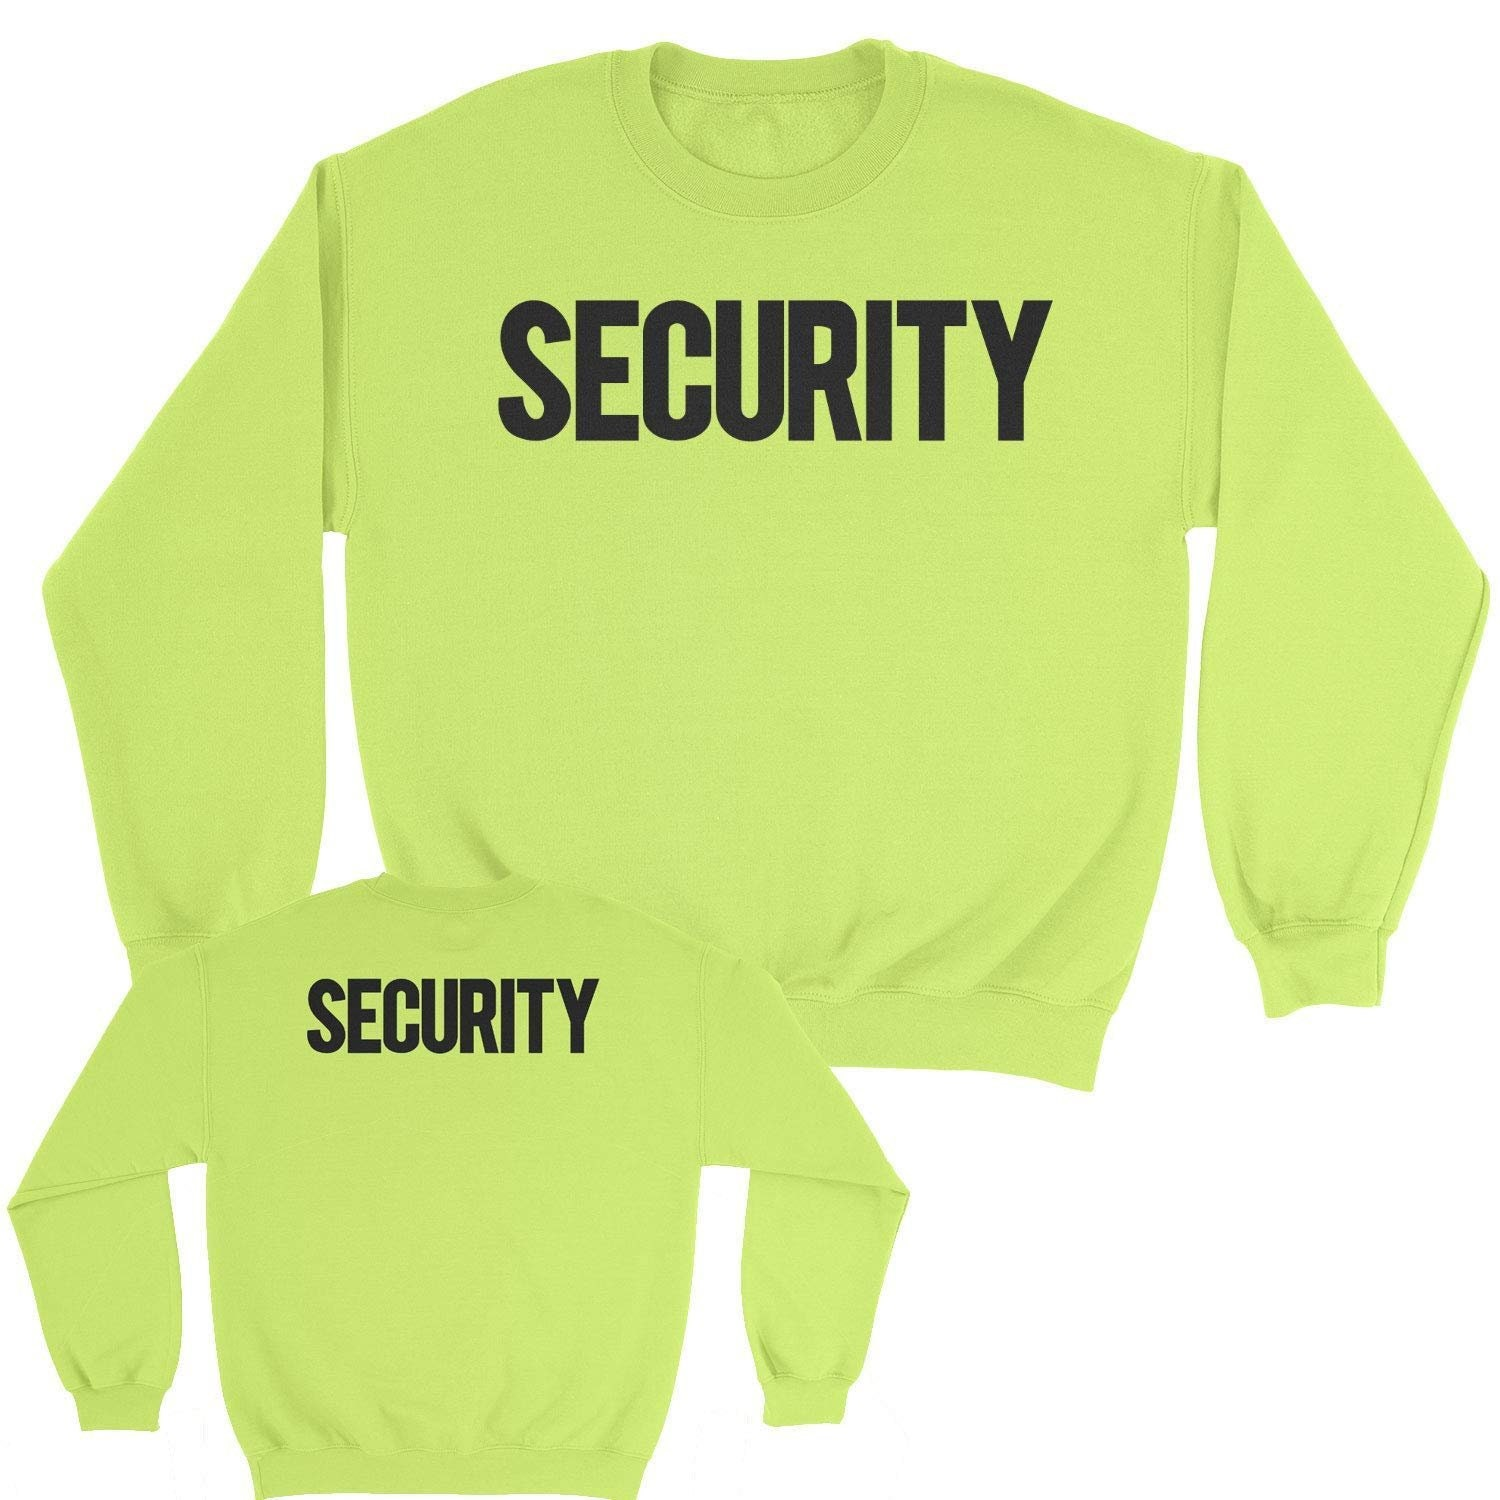 Black-Neon, 4XL NYC FACTORY Security Polo Shirt Front Back Print Mens Tee Staff Event Uniform Bouncer Screen Printed